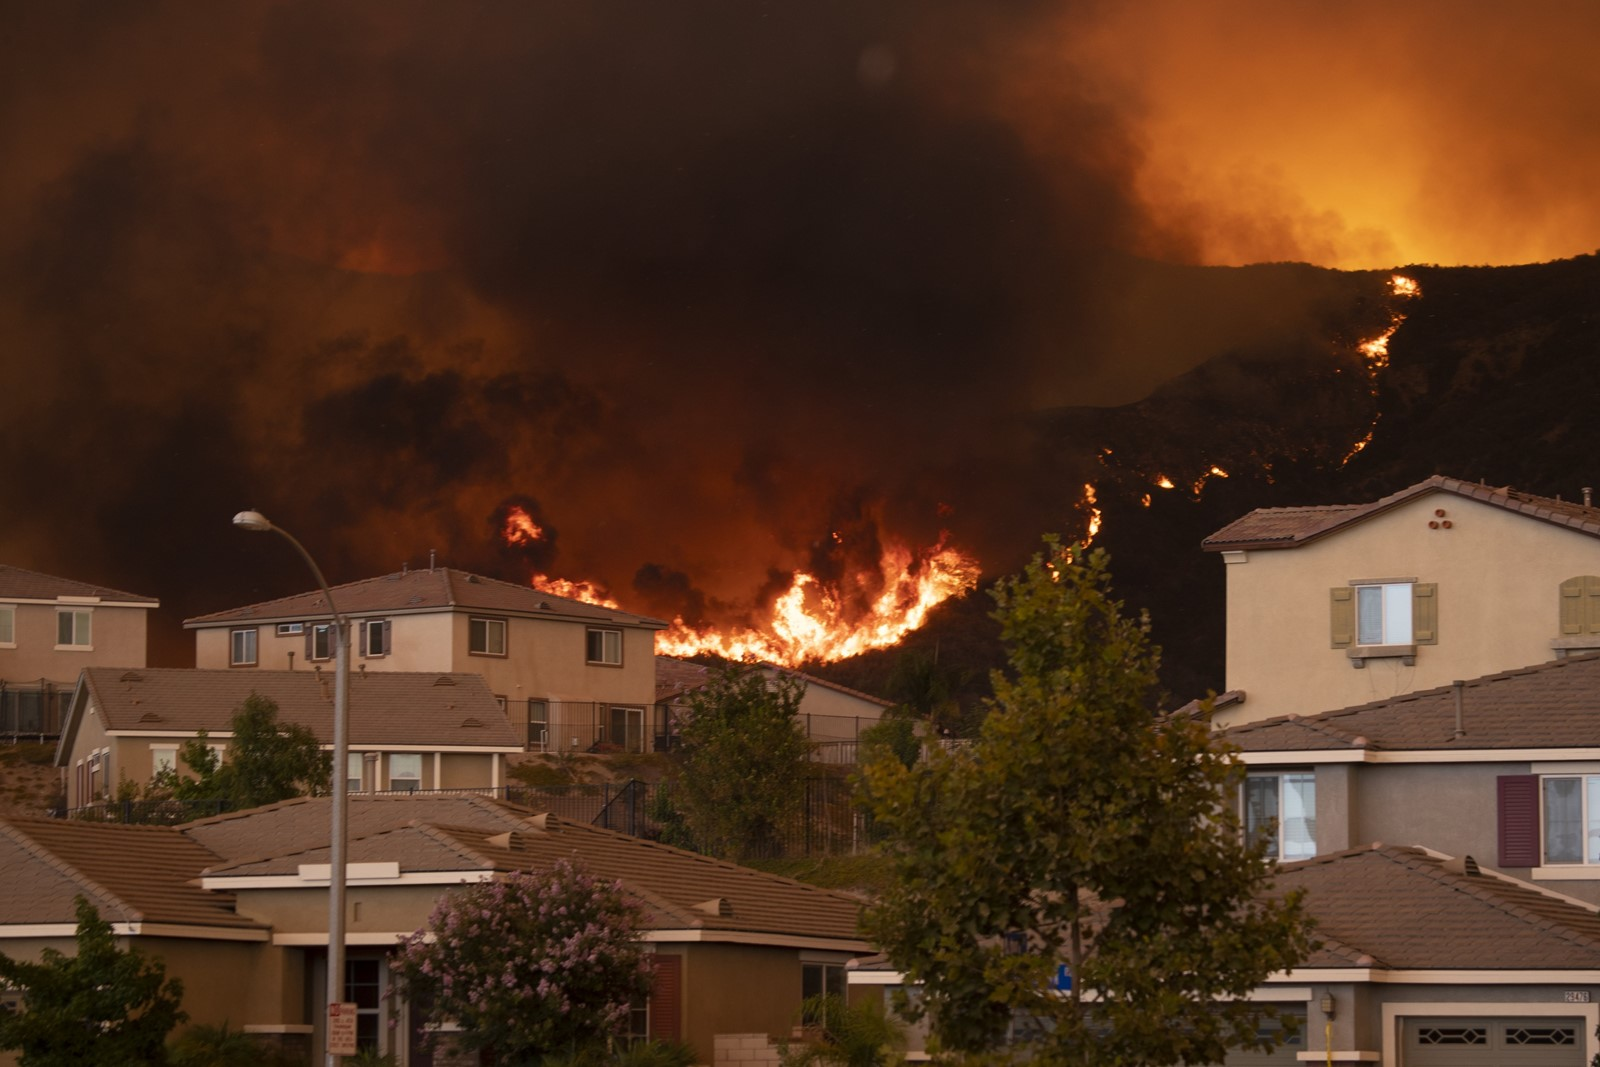 Flames approach homes in the McVicker Canyon neighborhood of Lake Elsinore on Wednesday. The growth of the Holy fire came on another day of record high temperatures in parts of Southern California. — Photograph: Allen J. Schaben/Los Angeles Times.